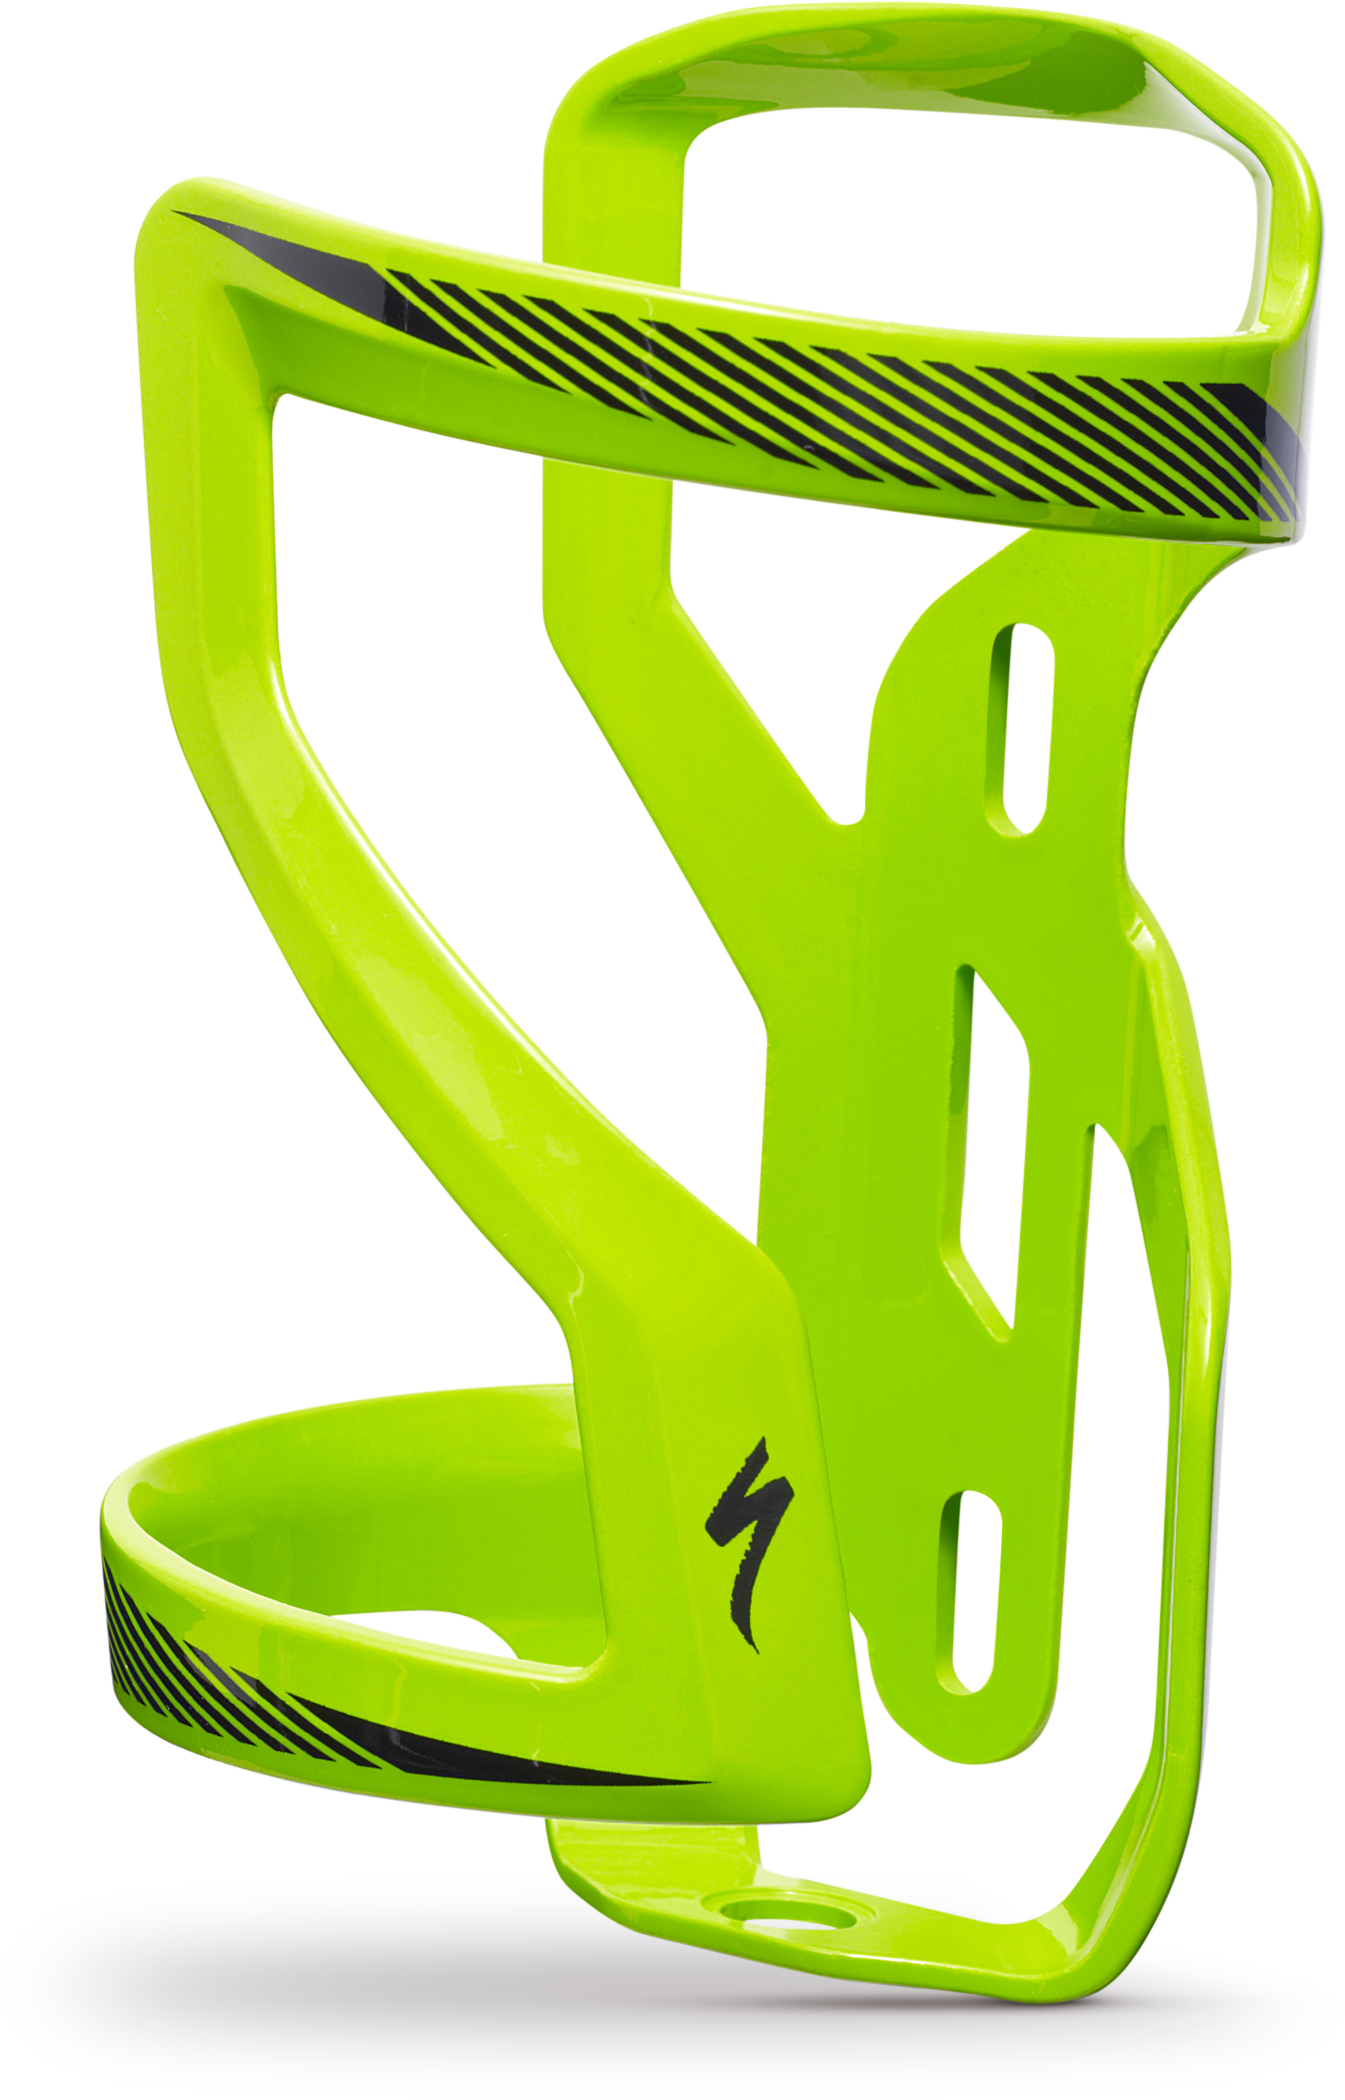 2019 Specialized Zee Cage II Left Bottle Cage in Green | Bottle cages